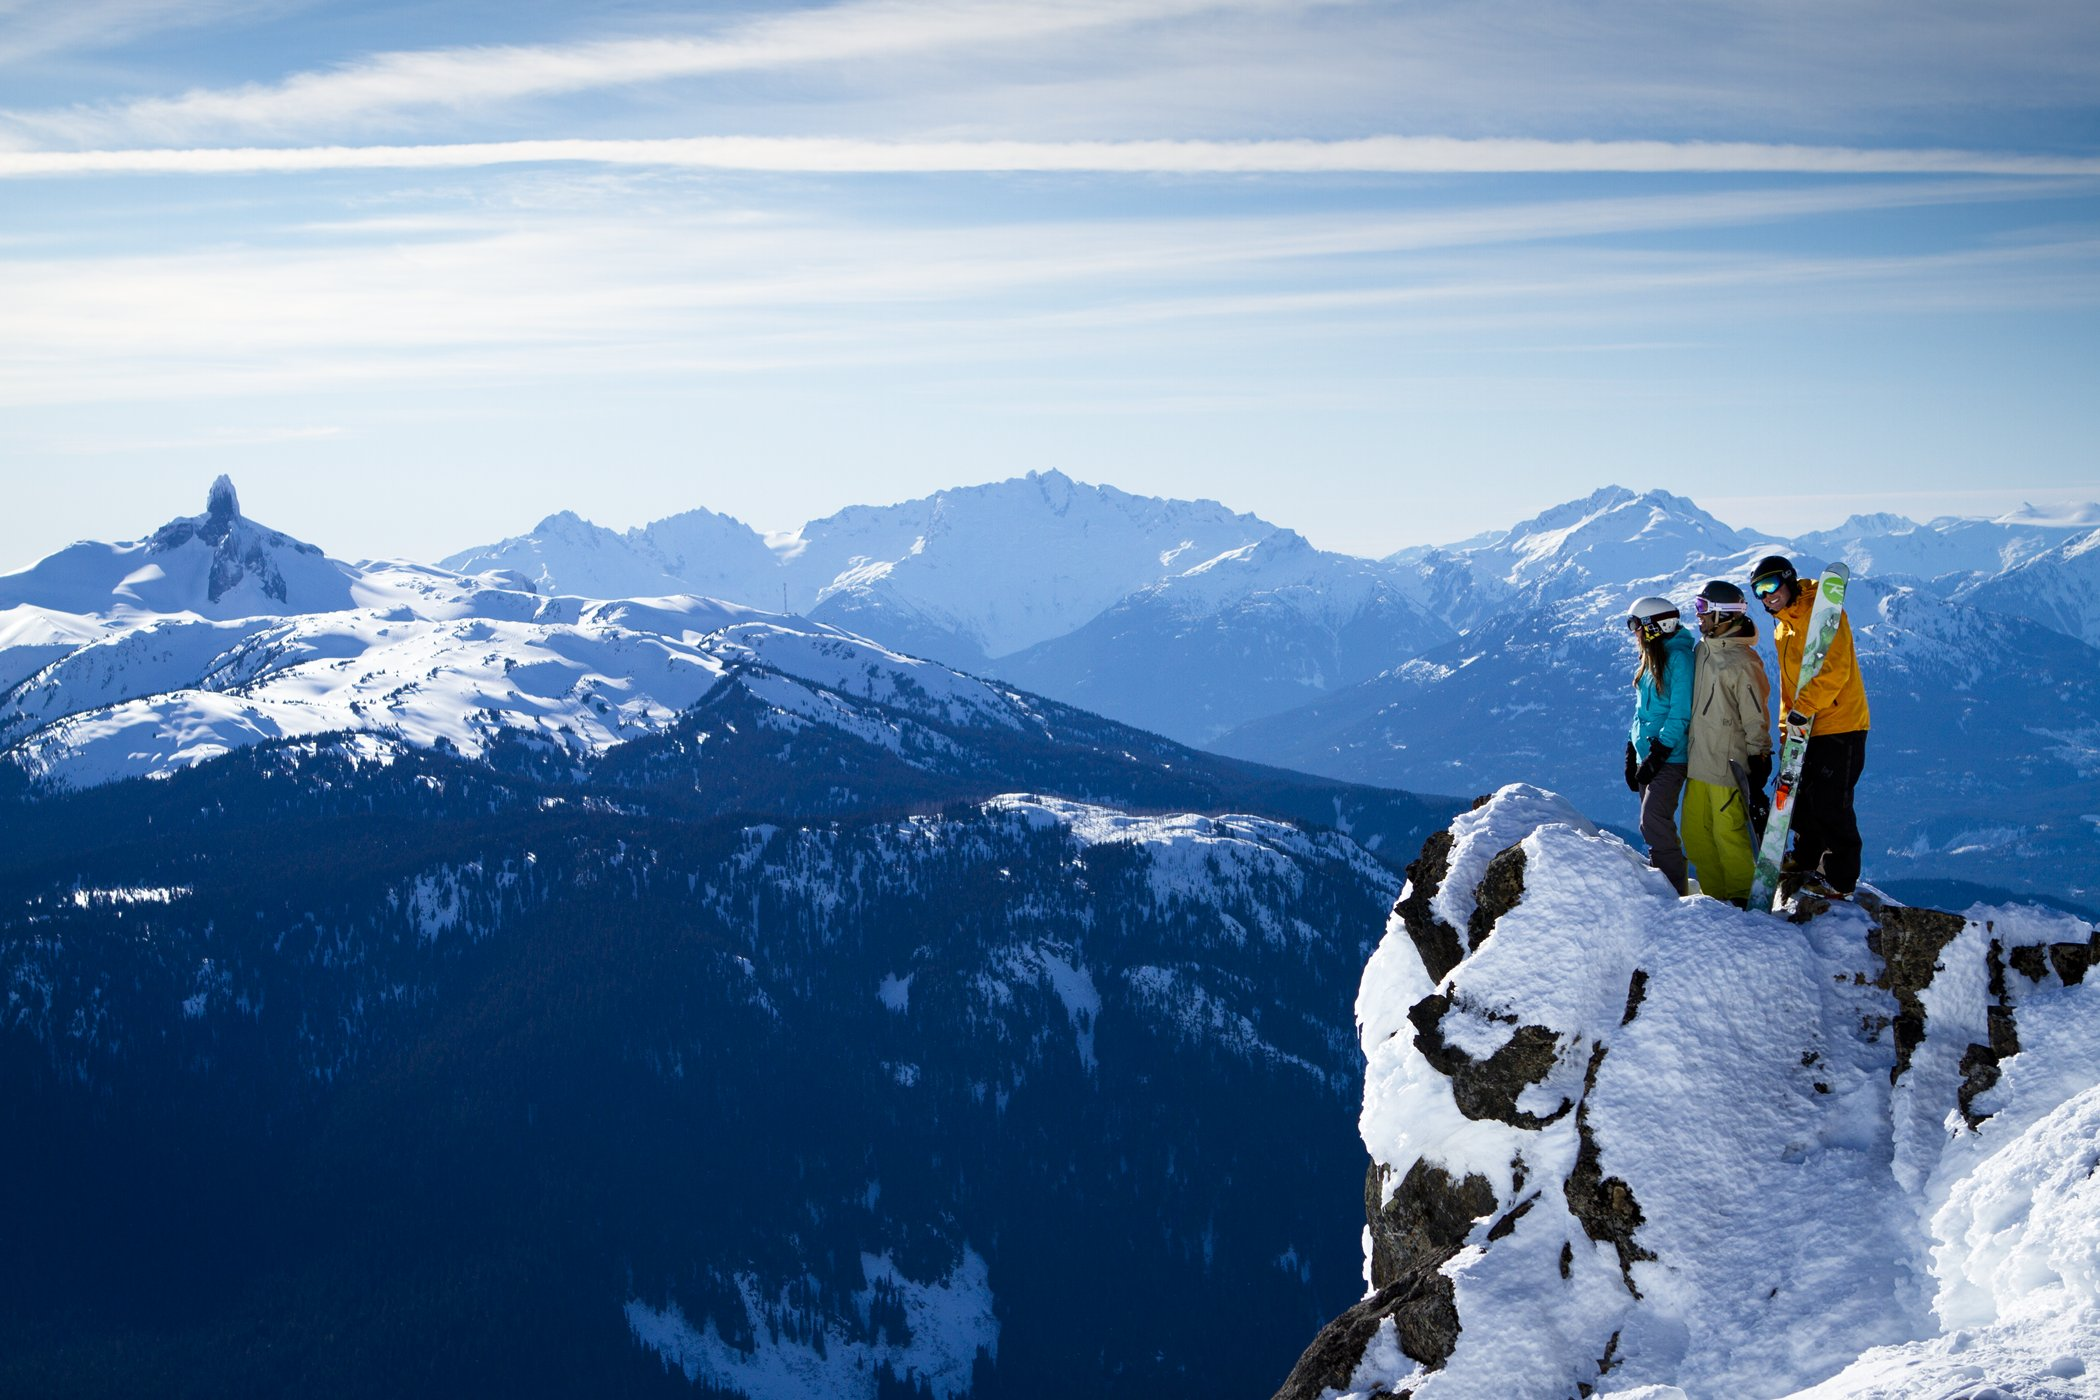 Skiers at Whistler Blackcomb, Canada